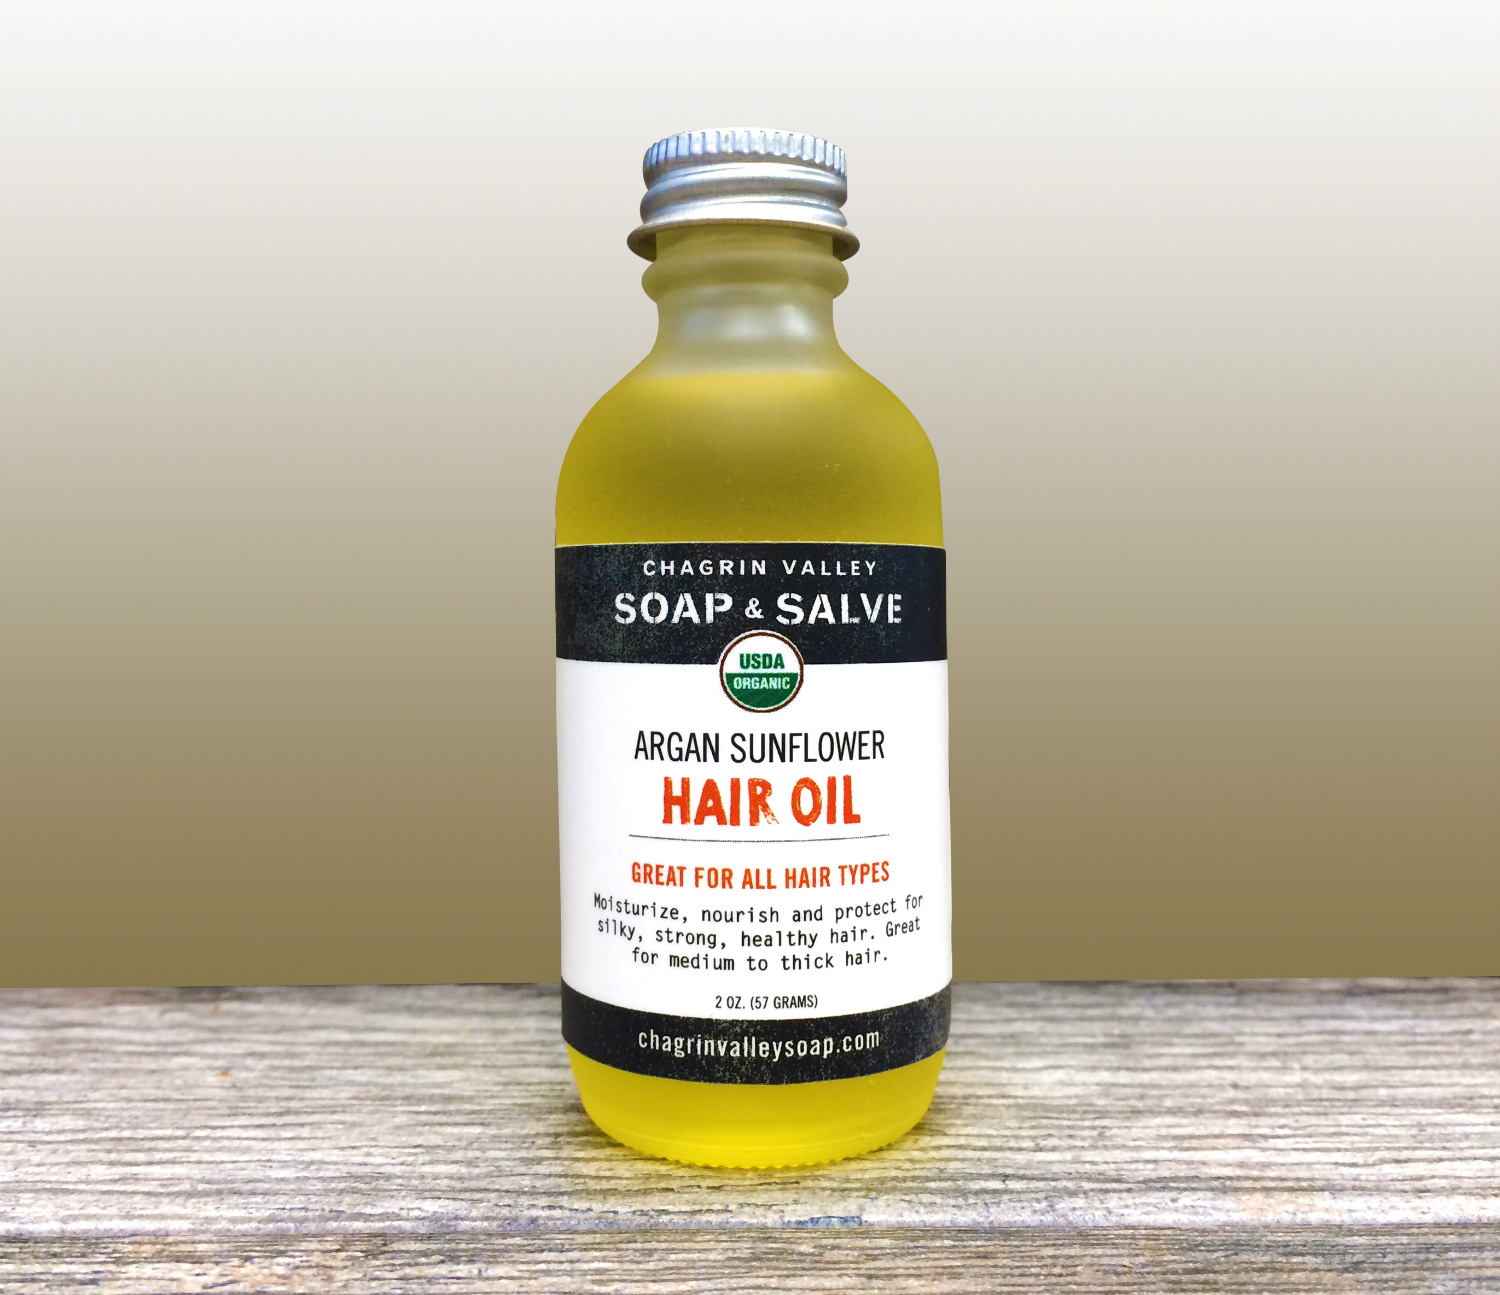 Hair Oil, image courtesy of Chagrin Valley Soap and Salve